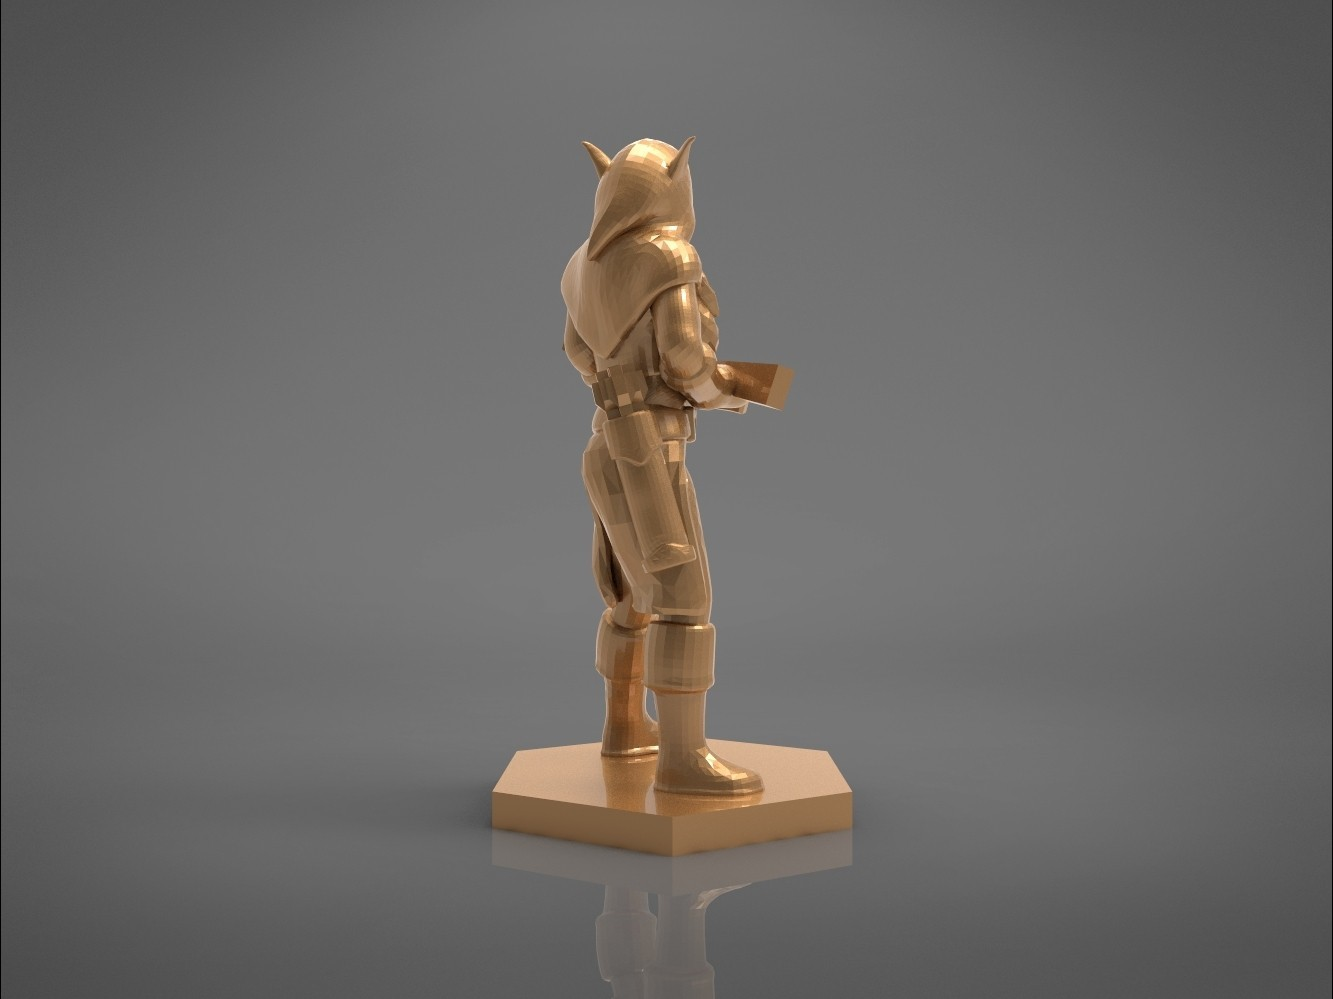 female_ranger-left_perspective.526.jpg Download STL file ELF RANGER FEMALE CHARACTER GAME FIGURES 3D print model • 3D printing object, 3D-mon